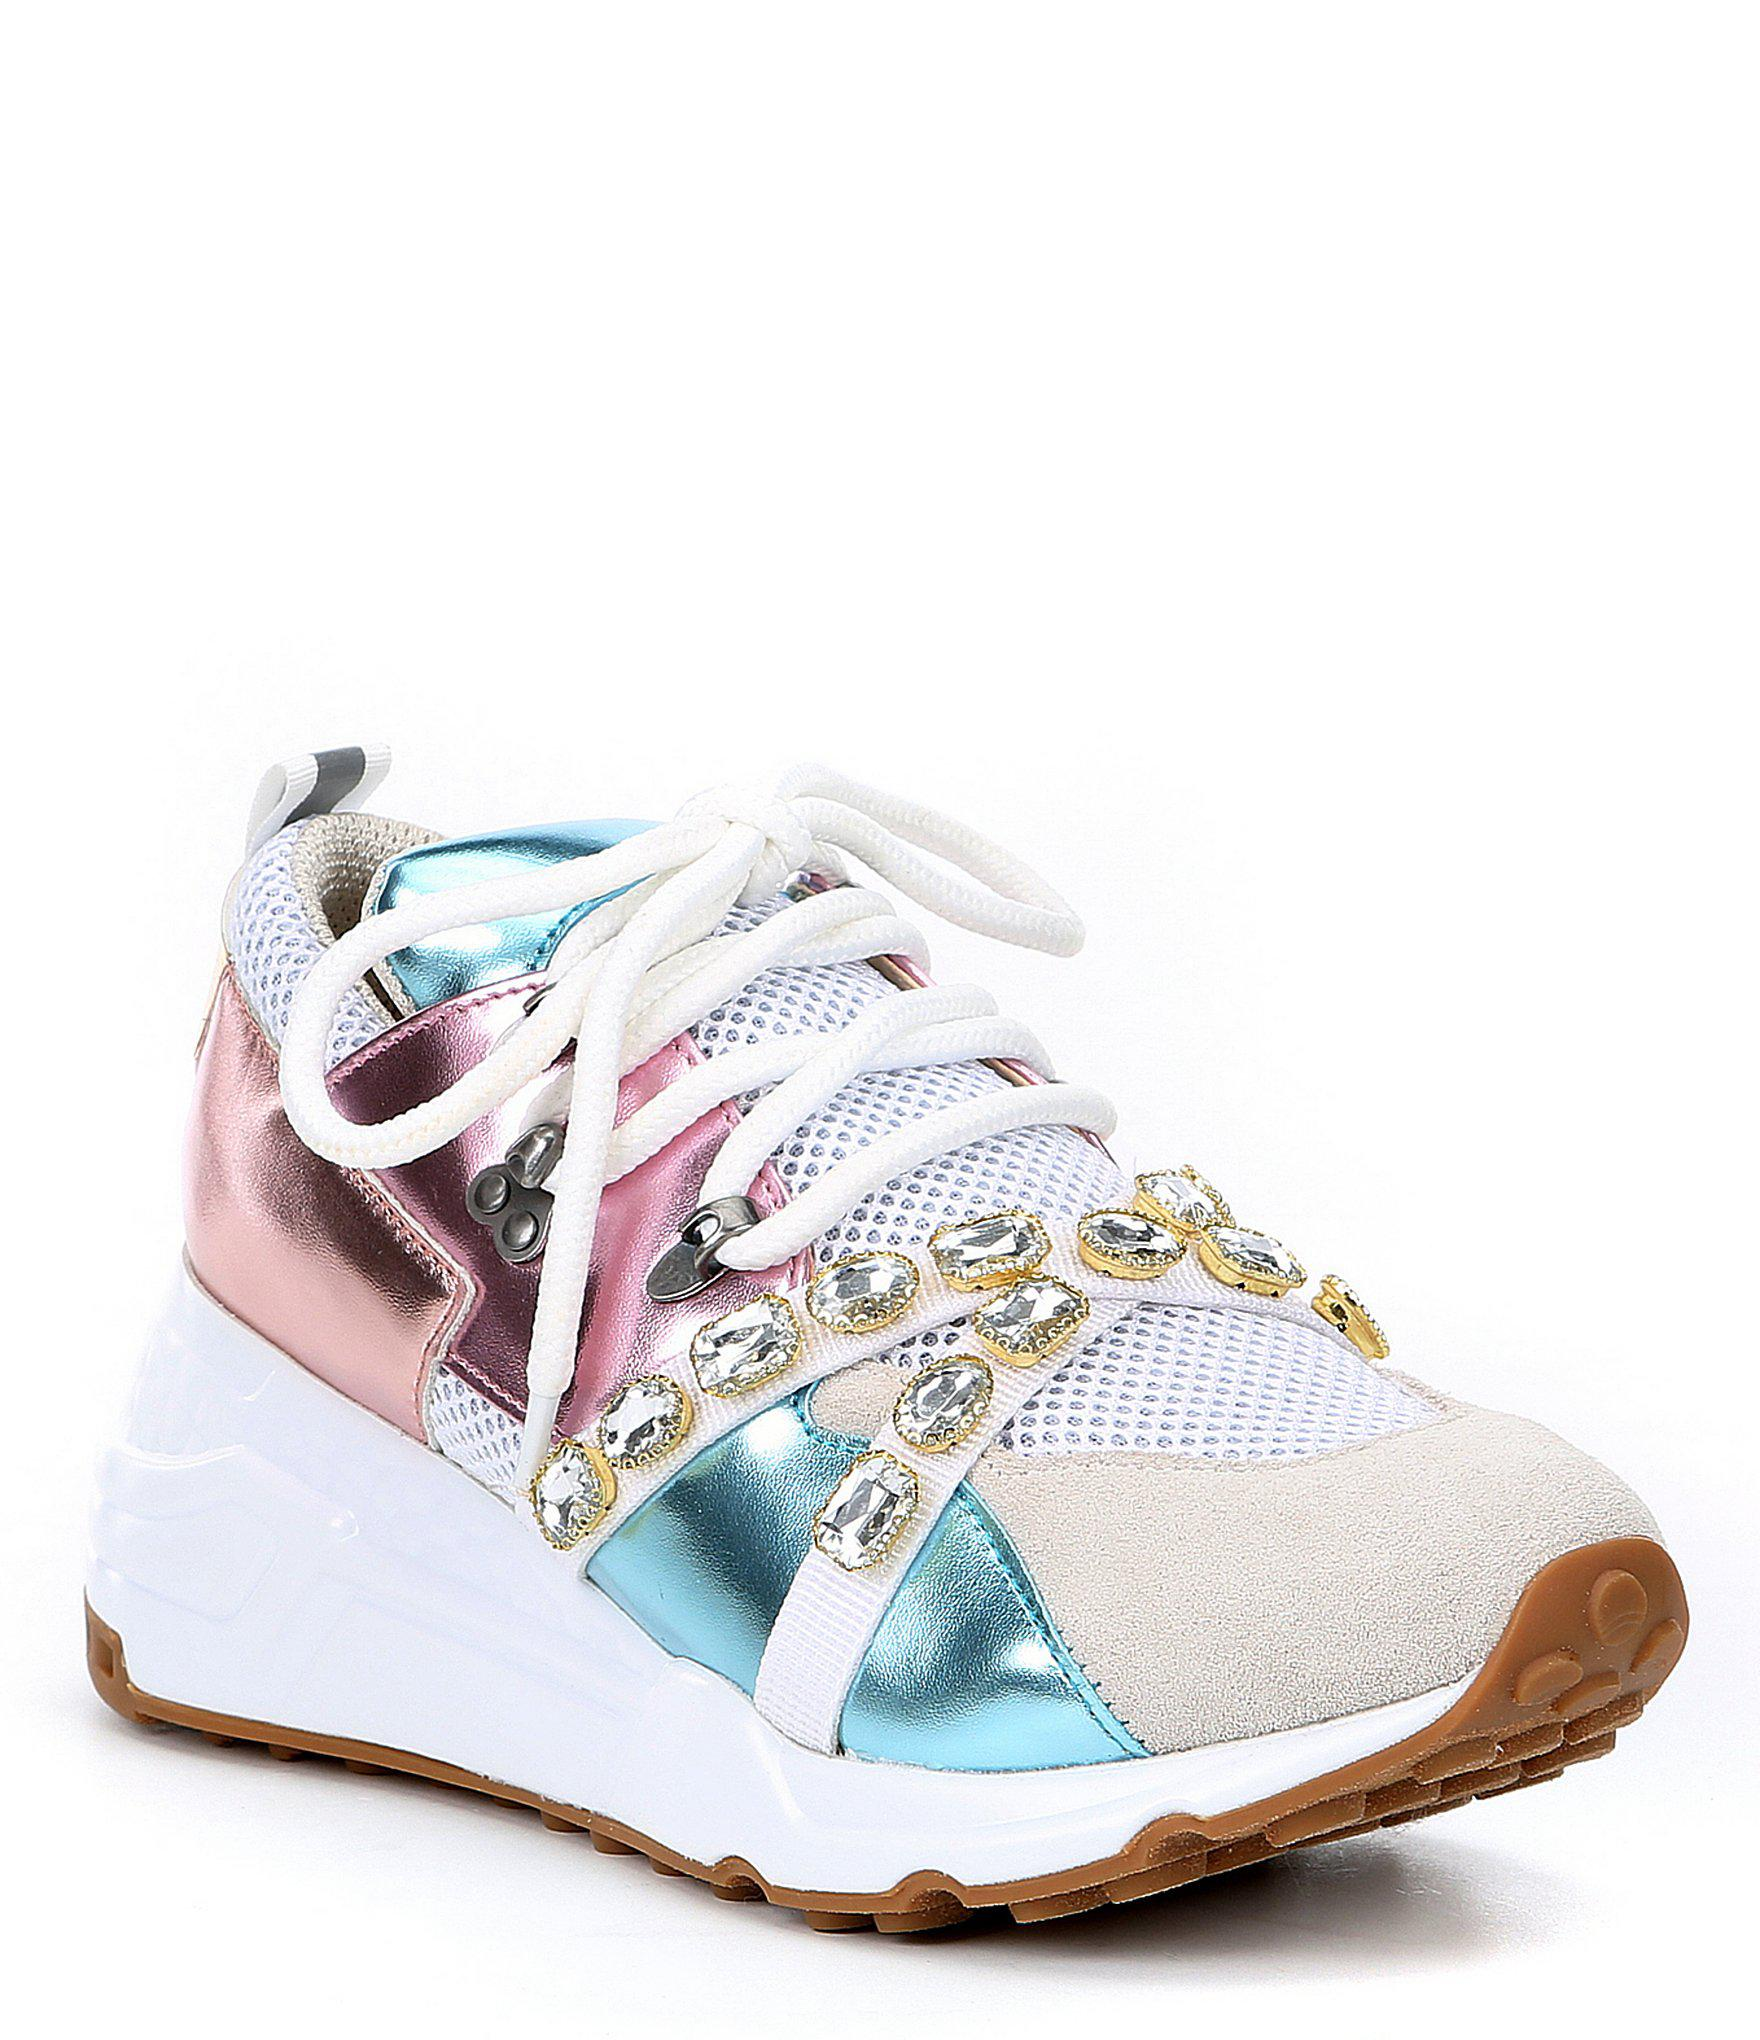 Lyst - Steve Madden Credit Fabric And Suede Sneakers d2529e7bcc9